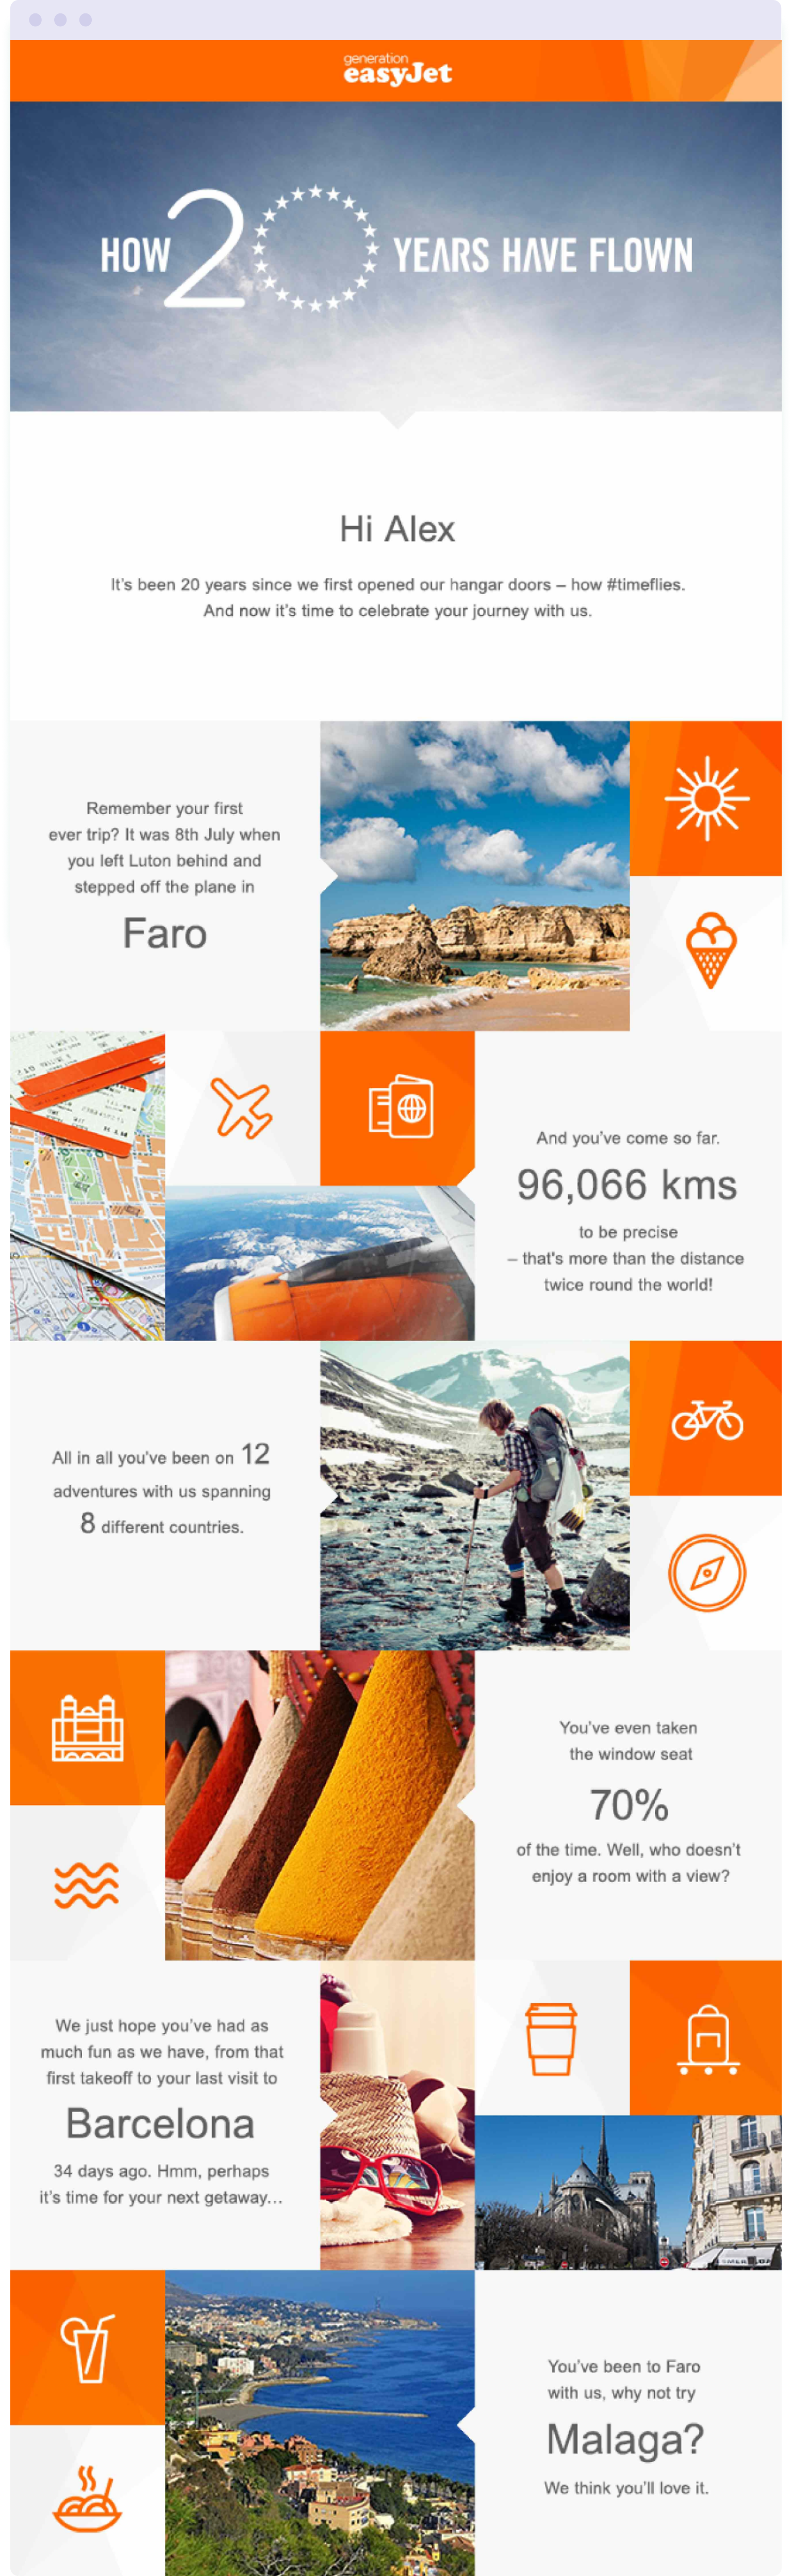 EasyJet 20th anniversary email as an example of personalising images in a marketing campaign